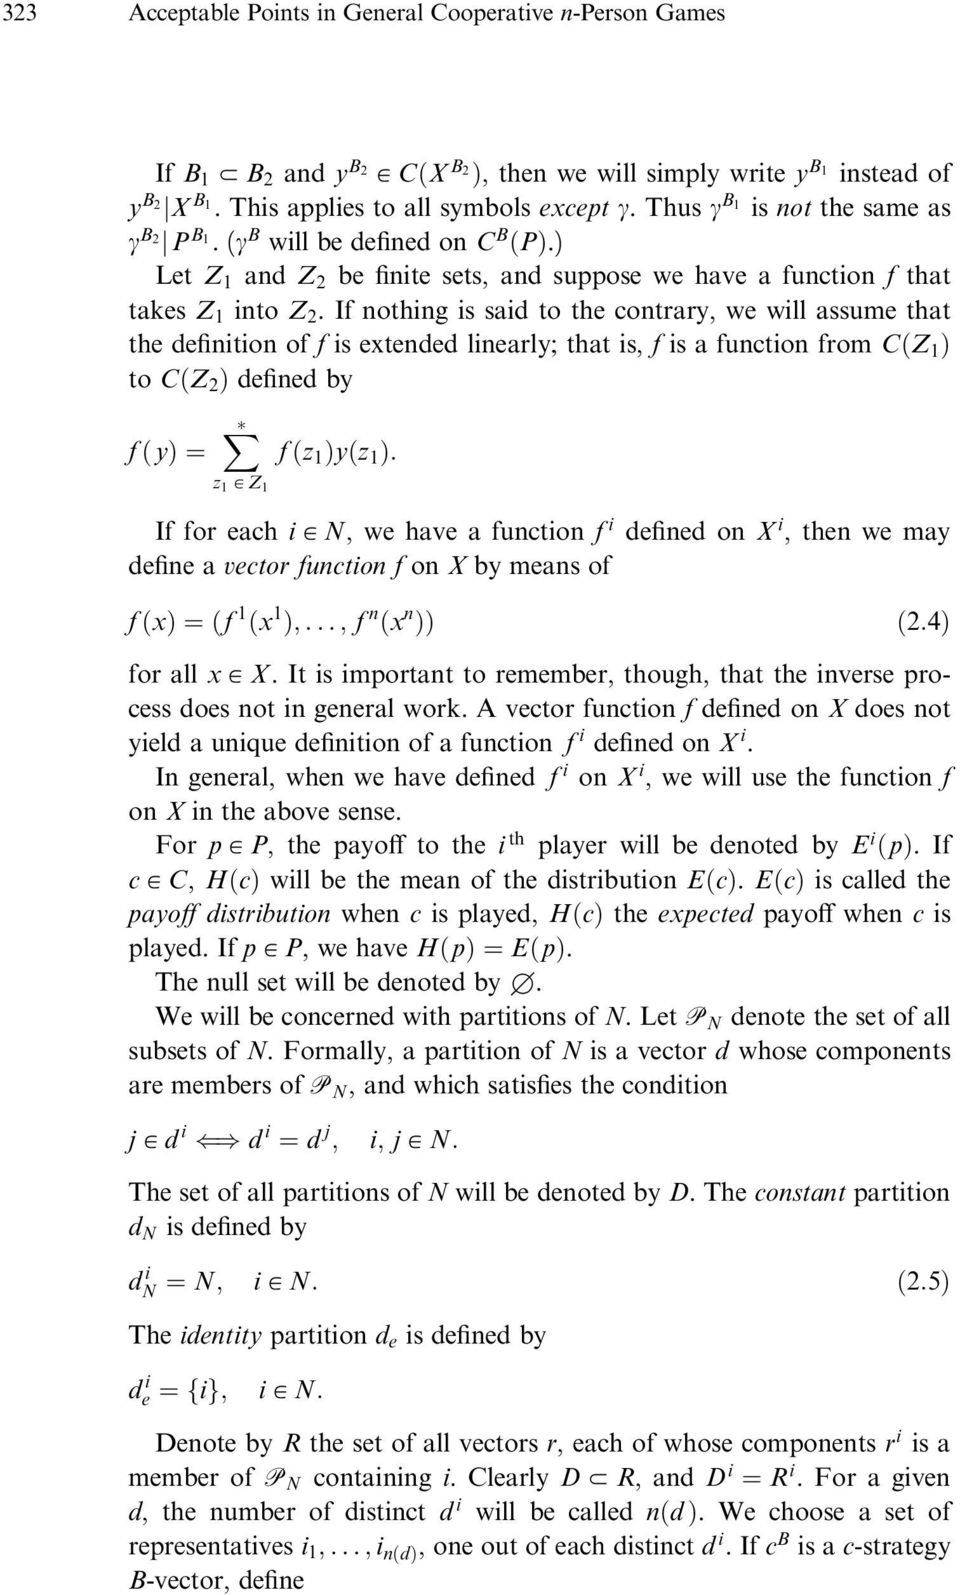 If nothing is said to the contrary, we will assume that the definition of f is extended linearly; that is, f is a function from CðZ 1 Þ to CðZ 2 Þ defined by f ðyþ ¼ X z 1 A Z 1 f ðz 1 Þyðz 1 Þ: If